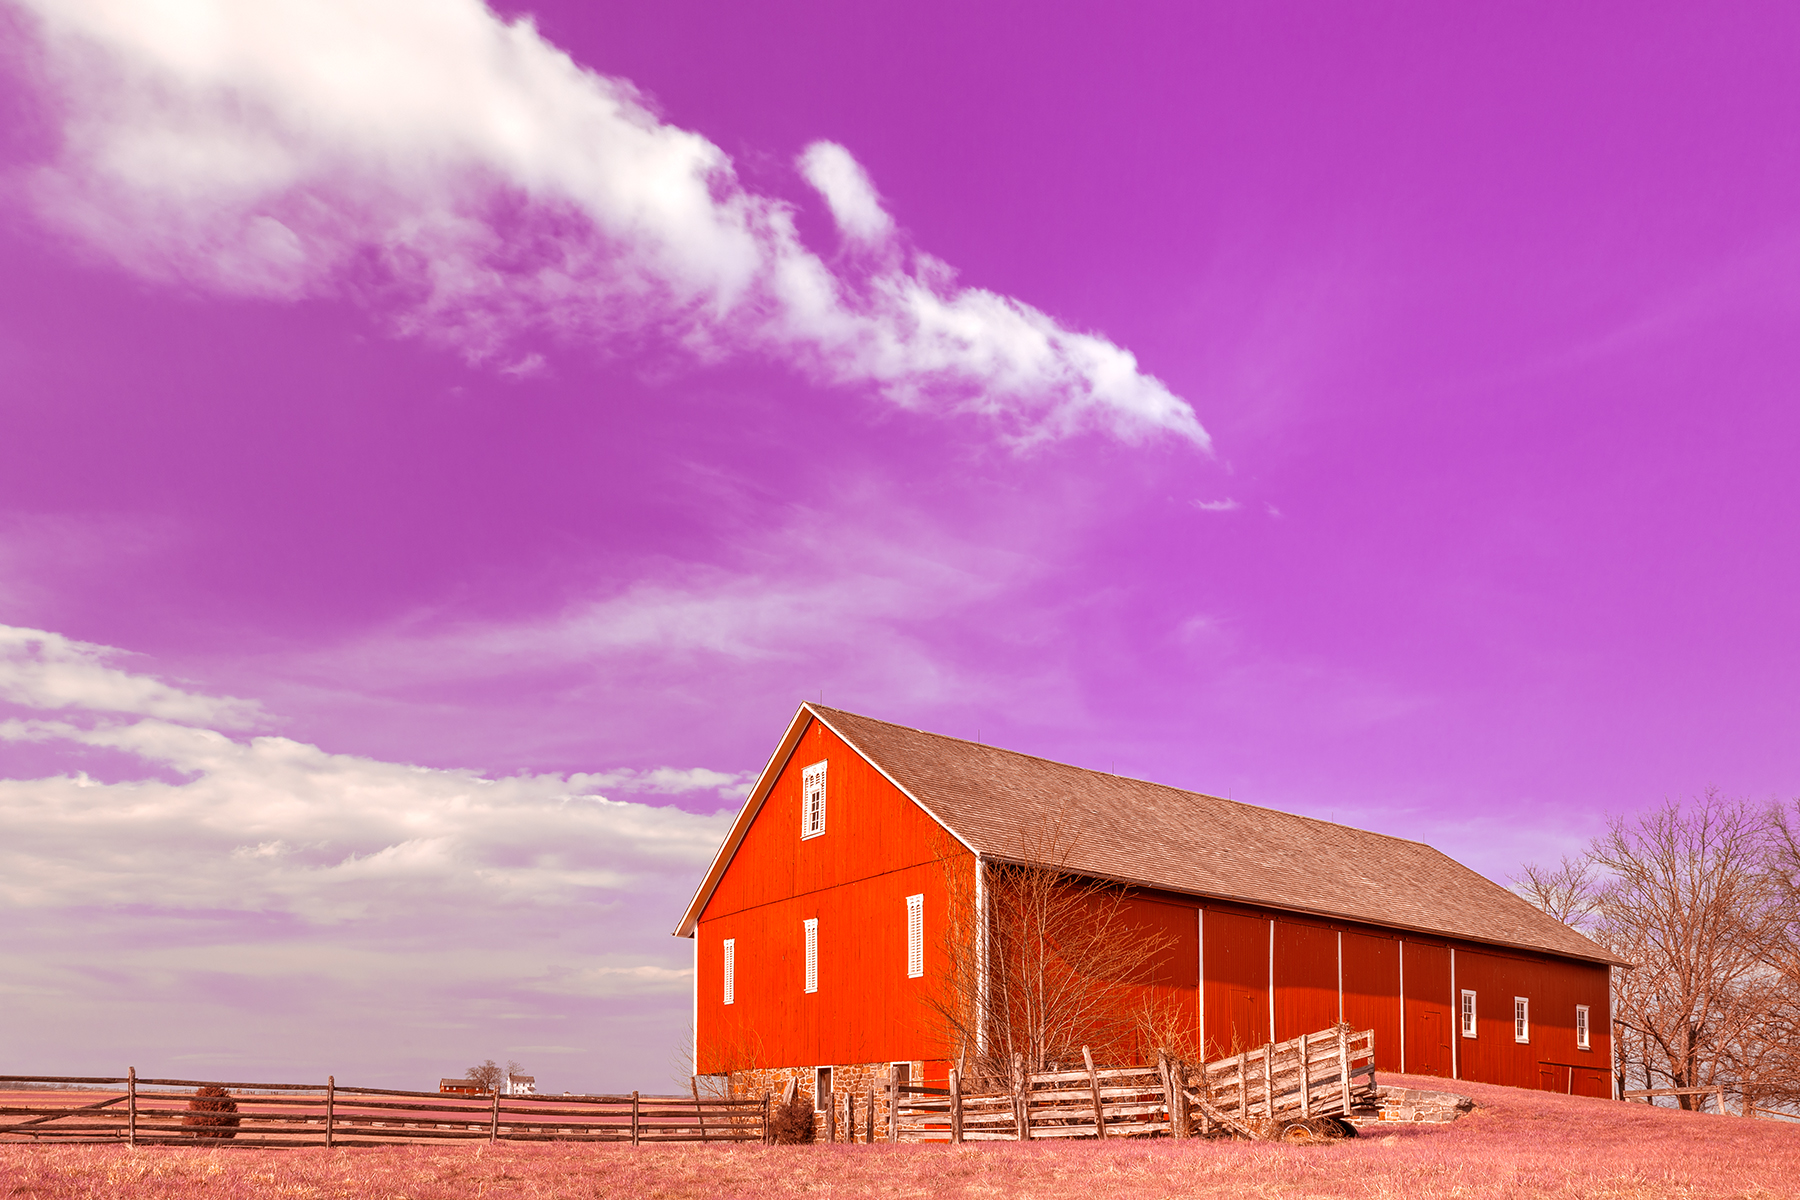 Spangler House Farm - Candy Fantasy HDR, America, Pastels, Rustic, Rural, HQ Photo